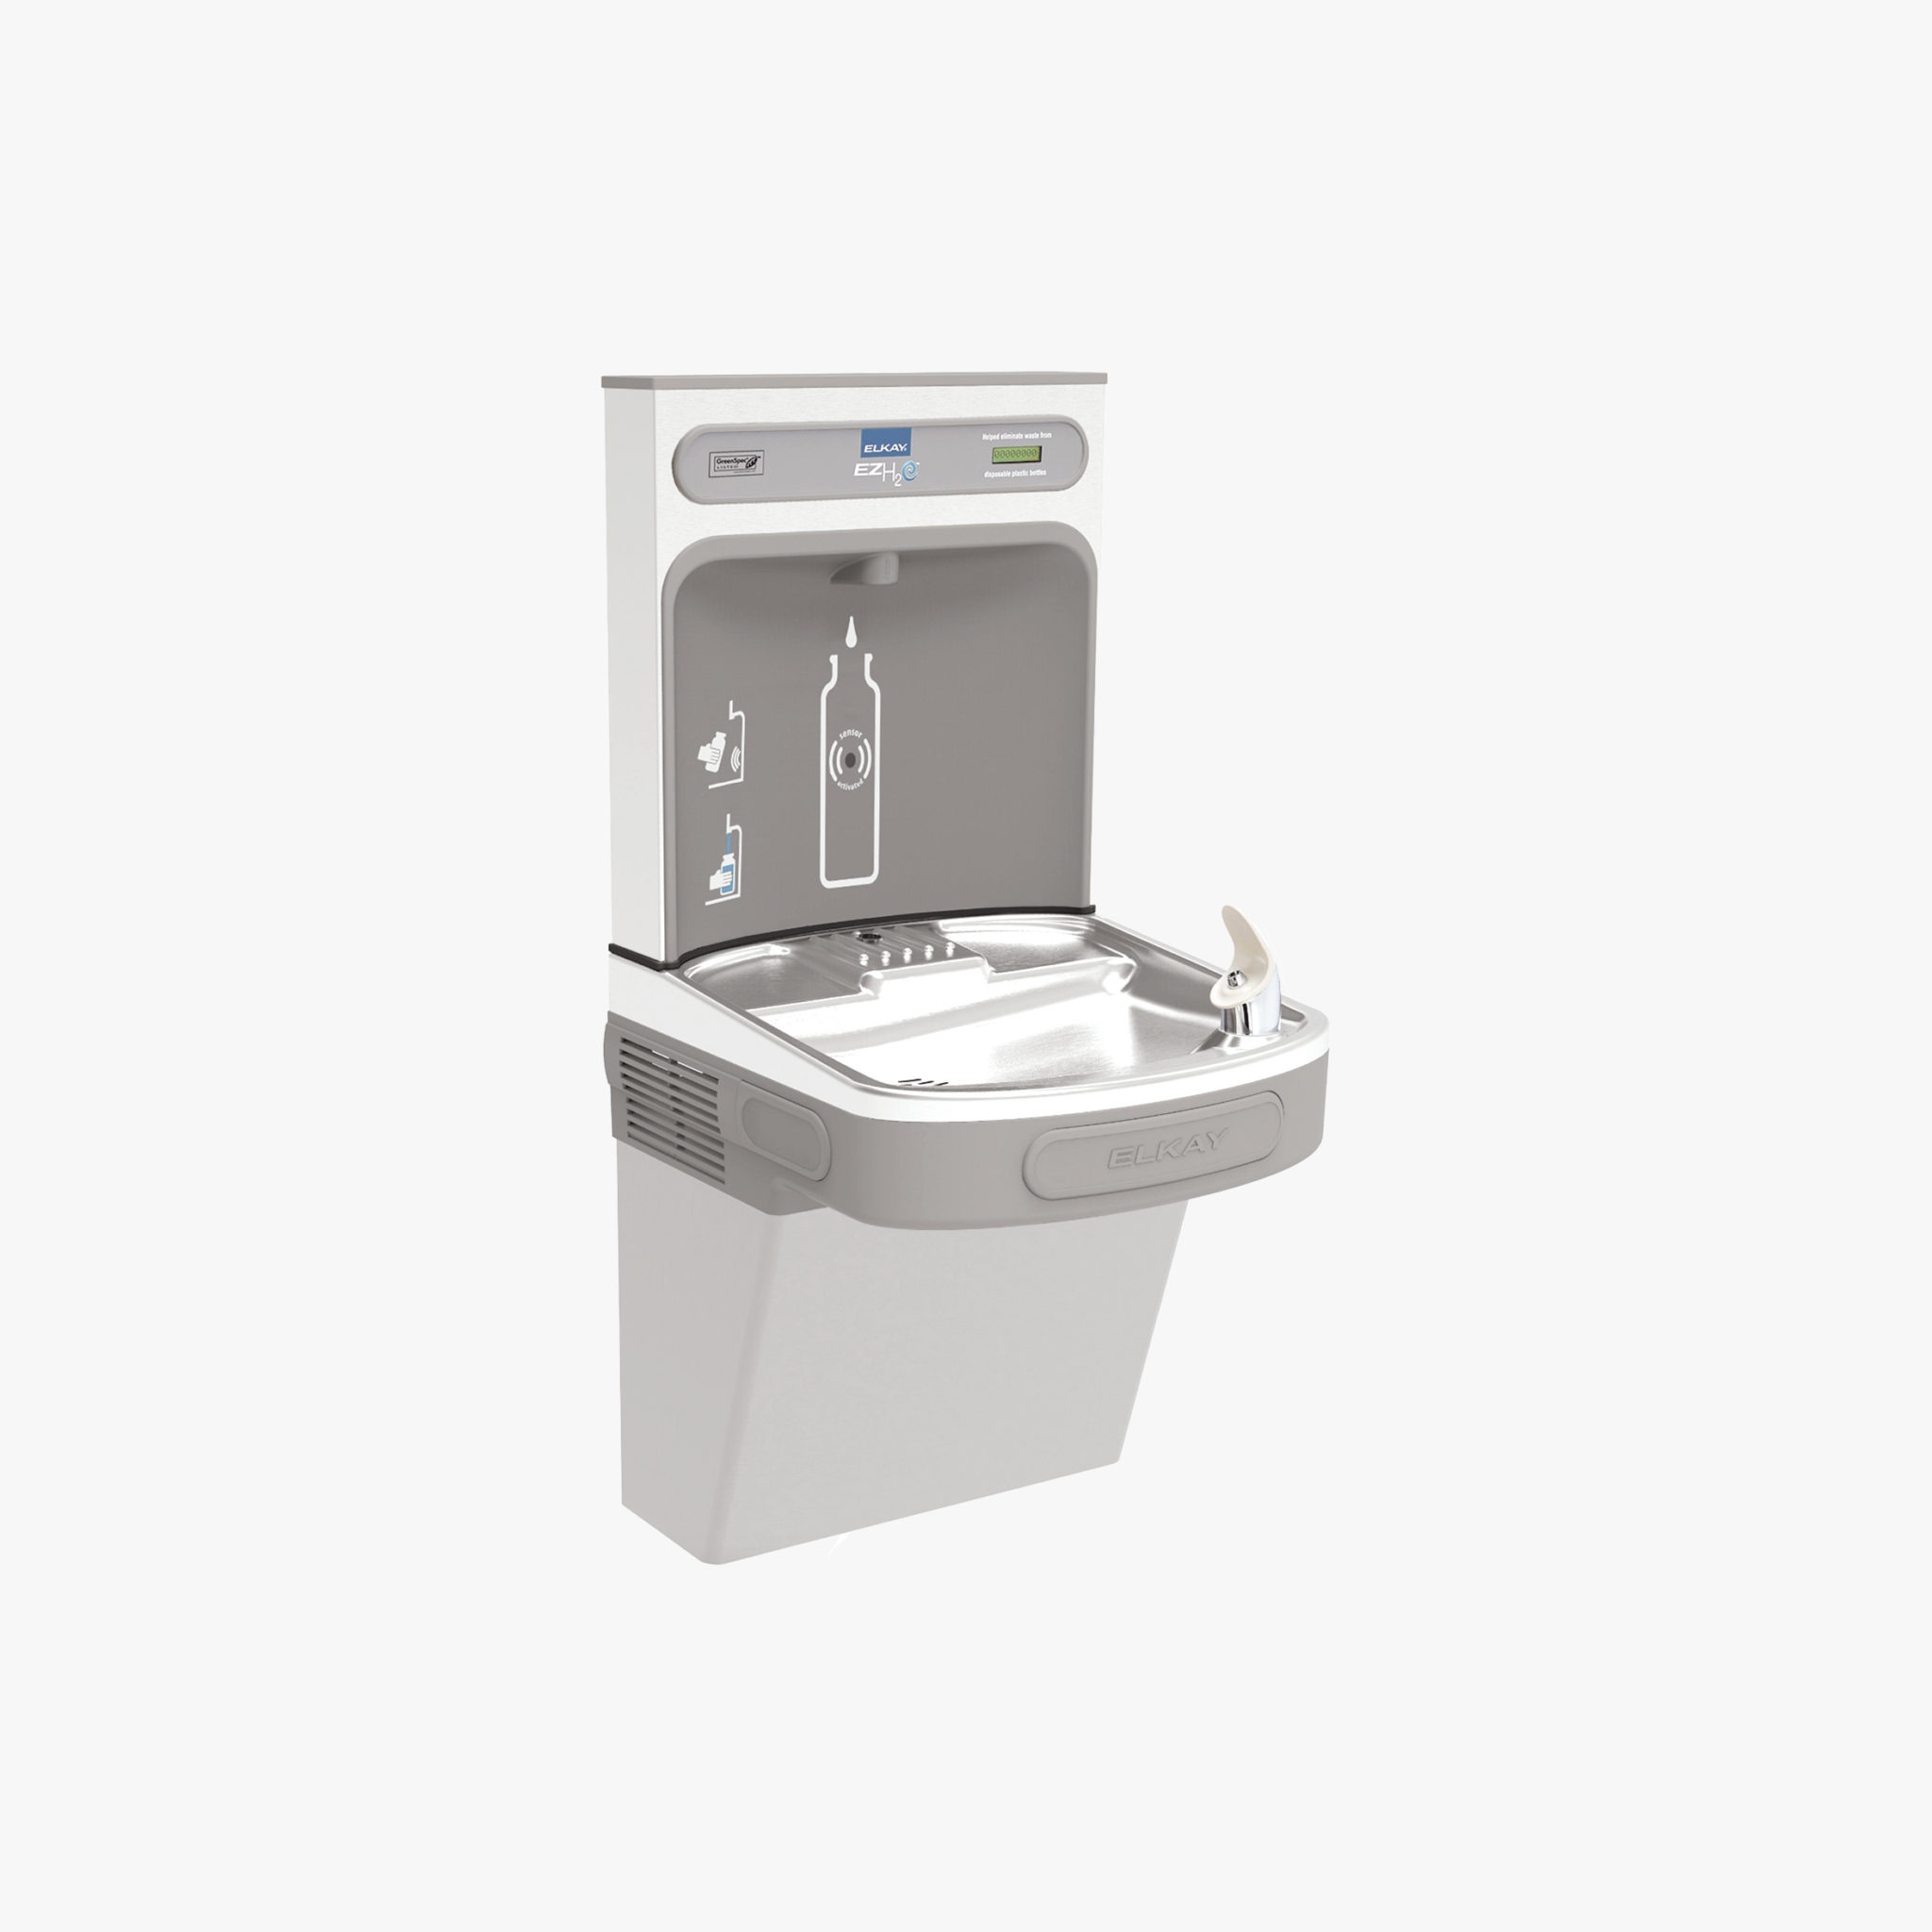 Elkay EZH20 Drinking Fountain and Bottle Refill Station